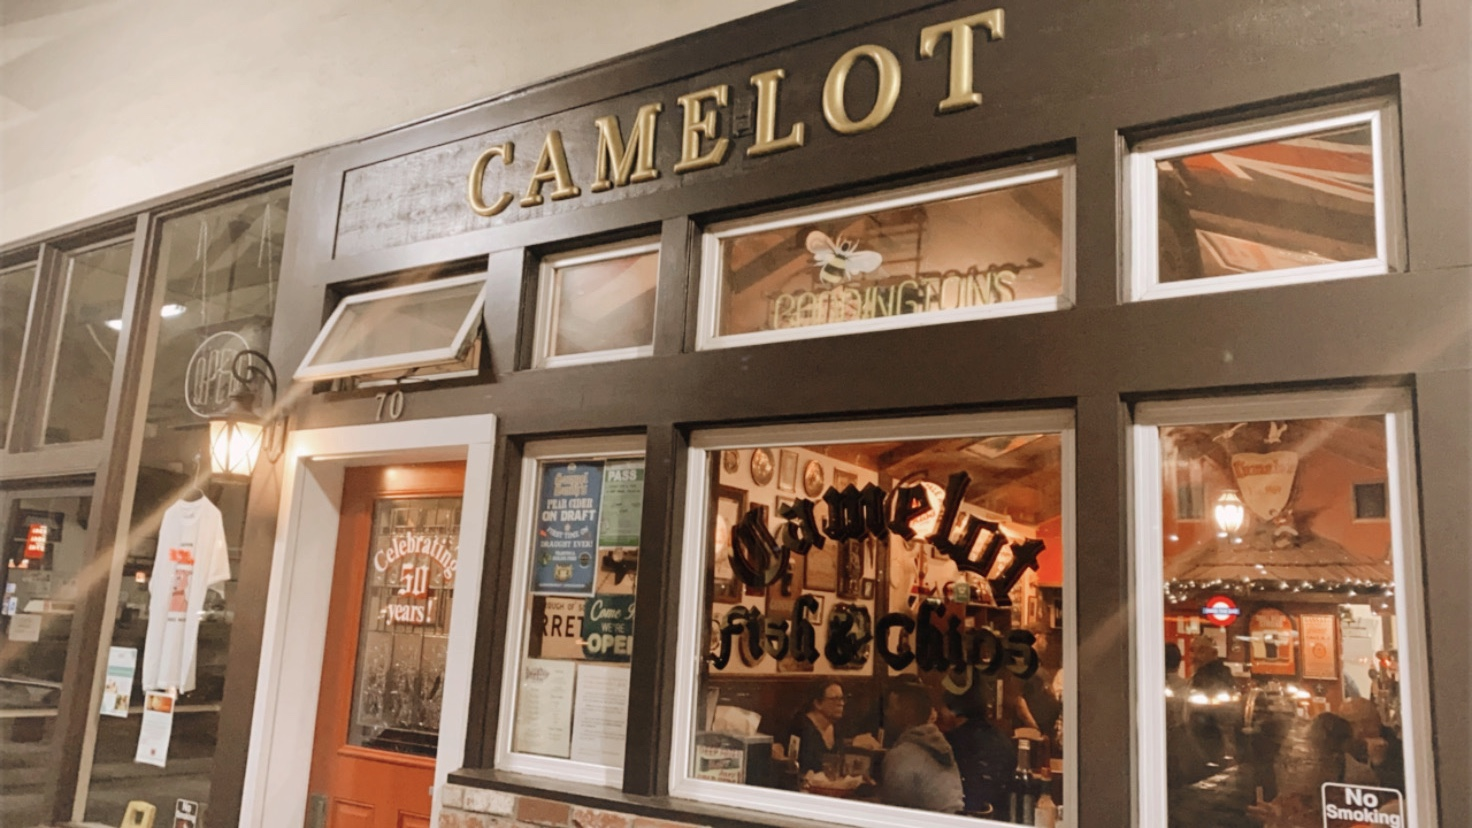 Camelot Fish and Chips in San Francisco | biblio-style.com